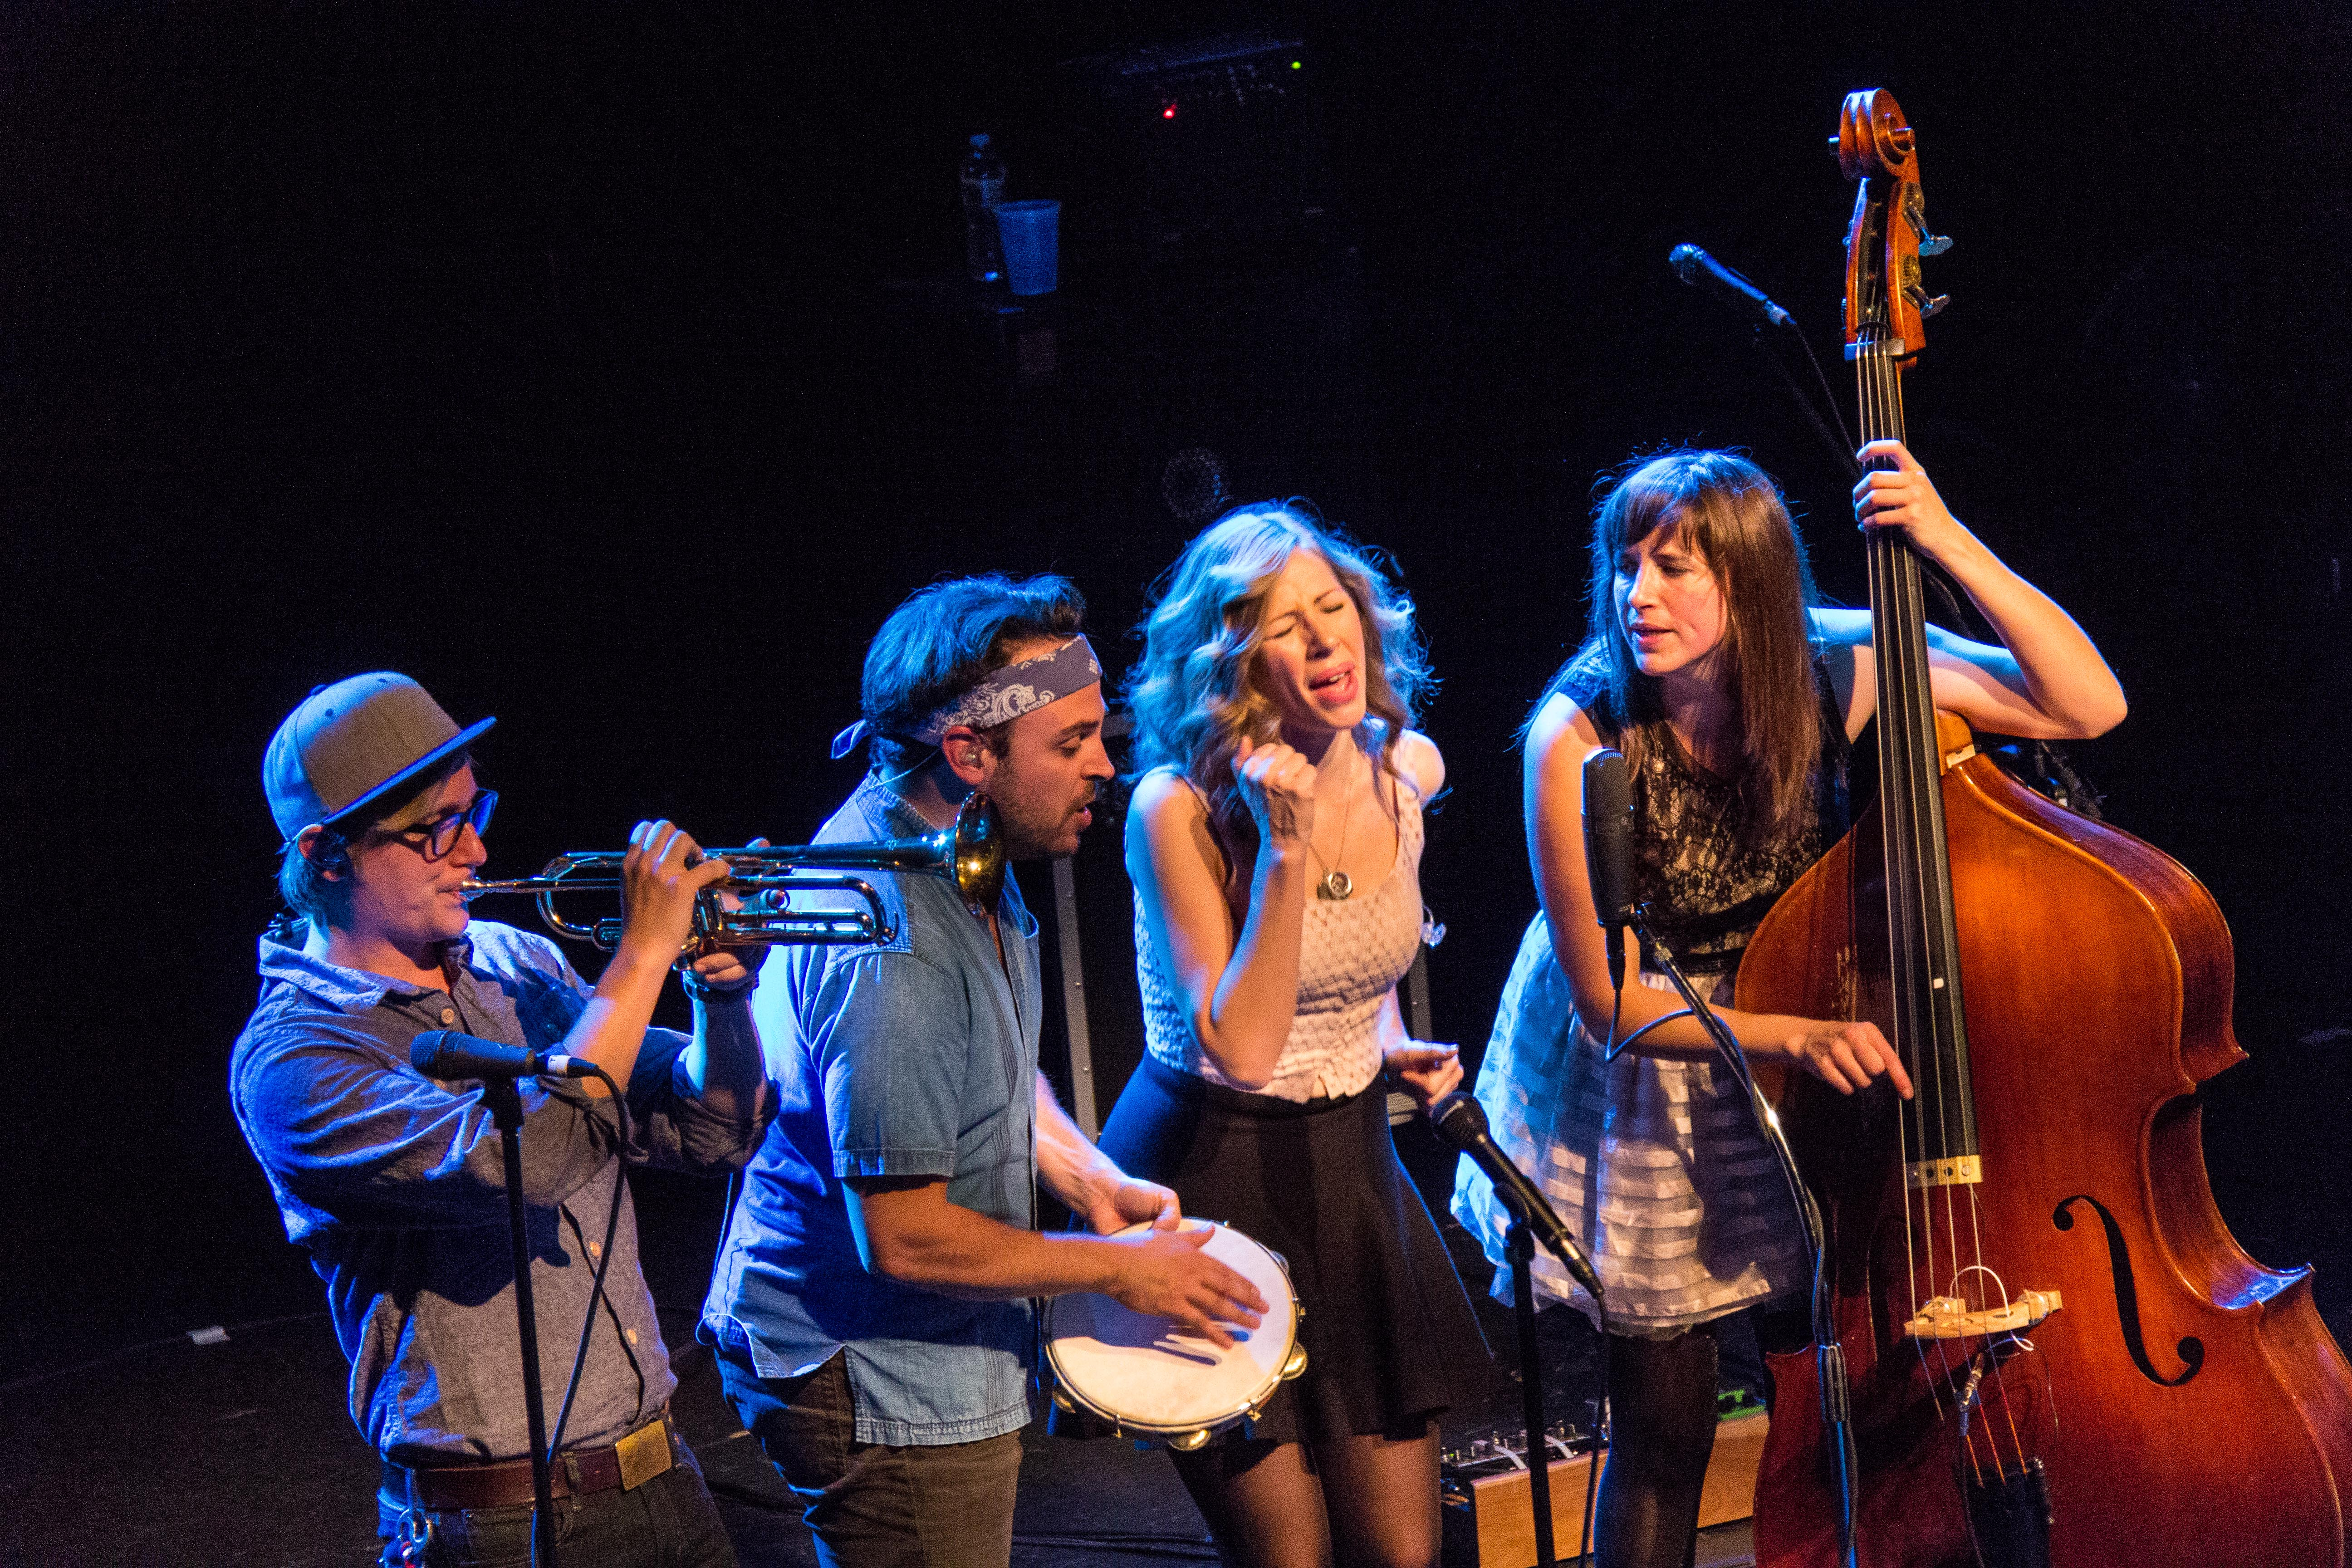 lake street dive rich girl life is good